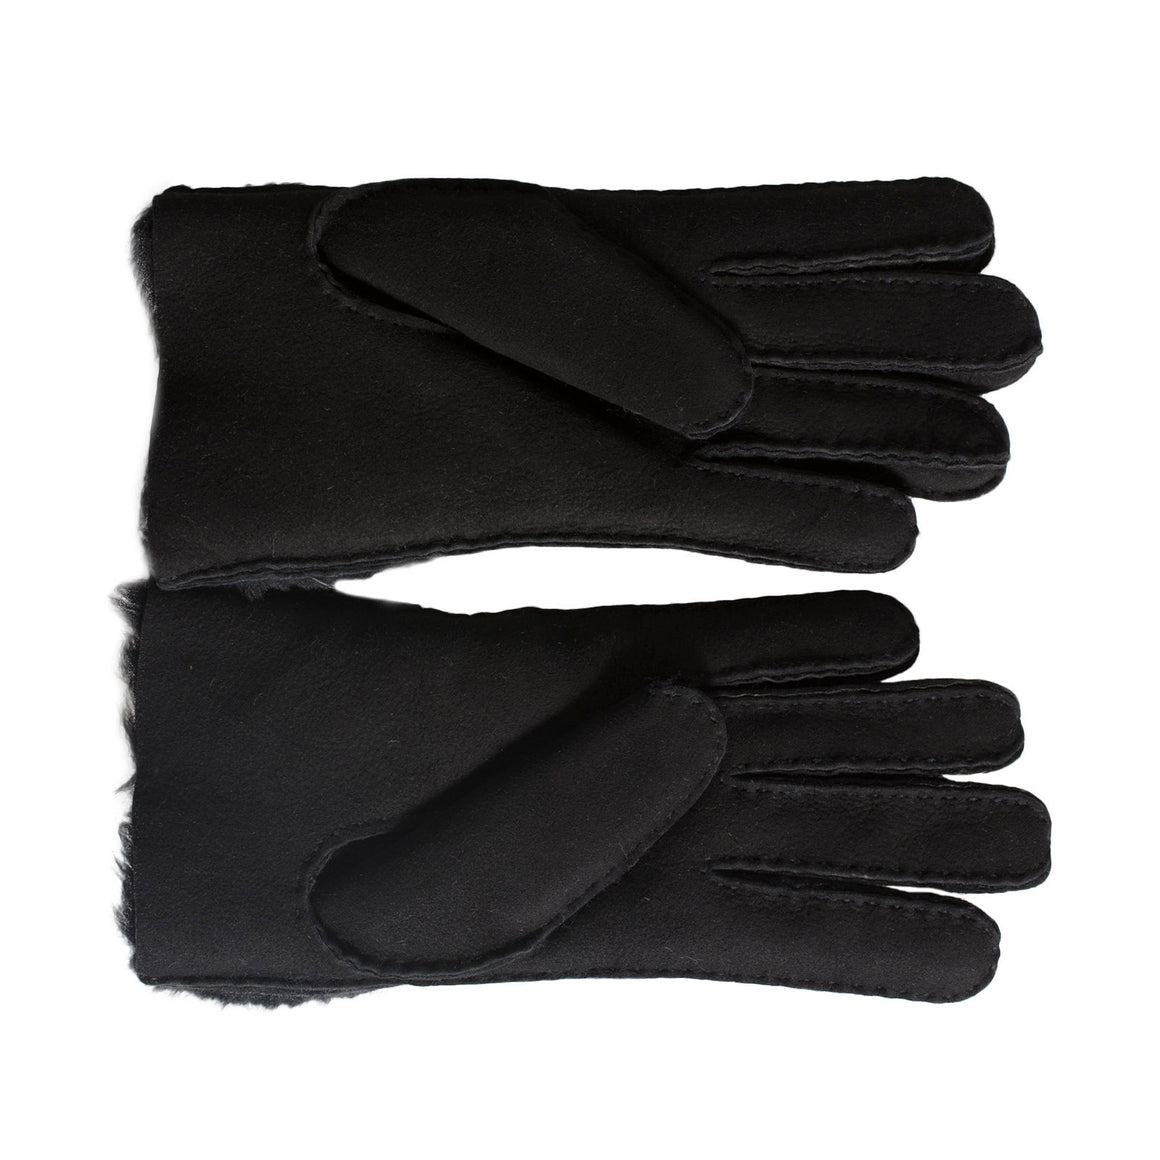 UGG Sheepskin Bow Black Gloves - Women's